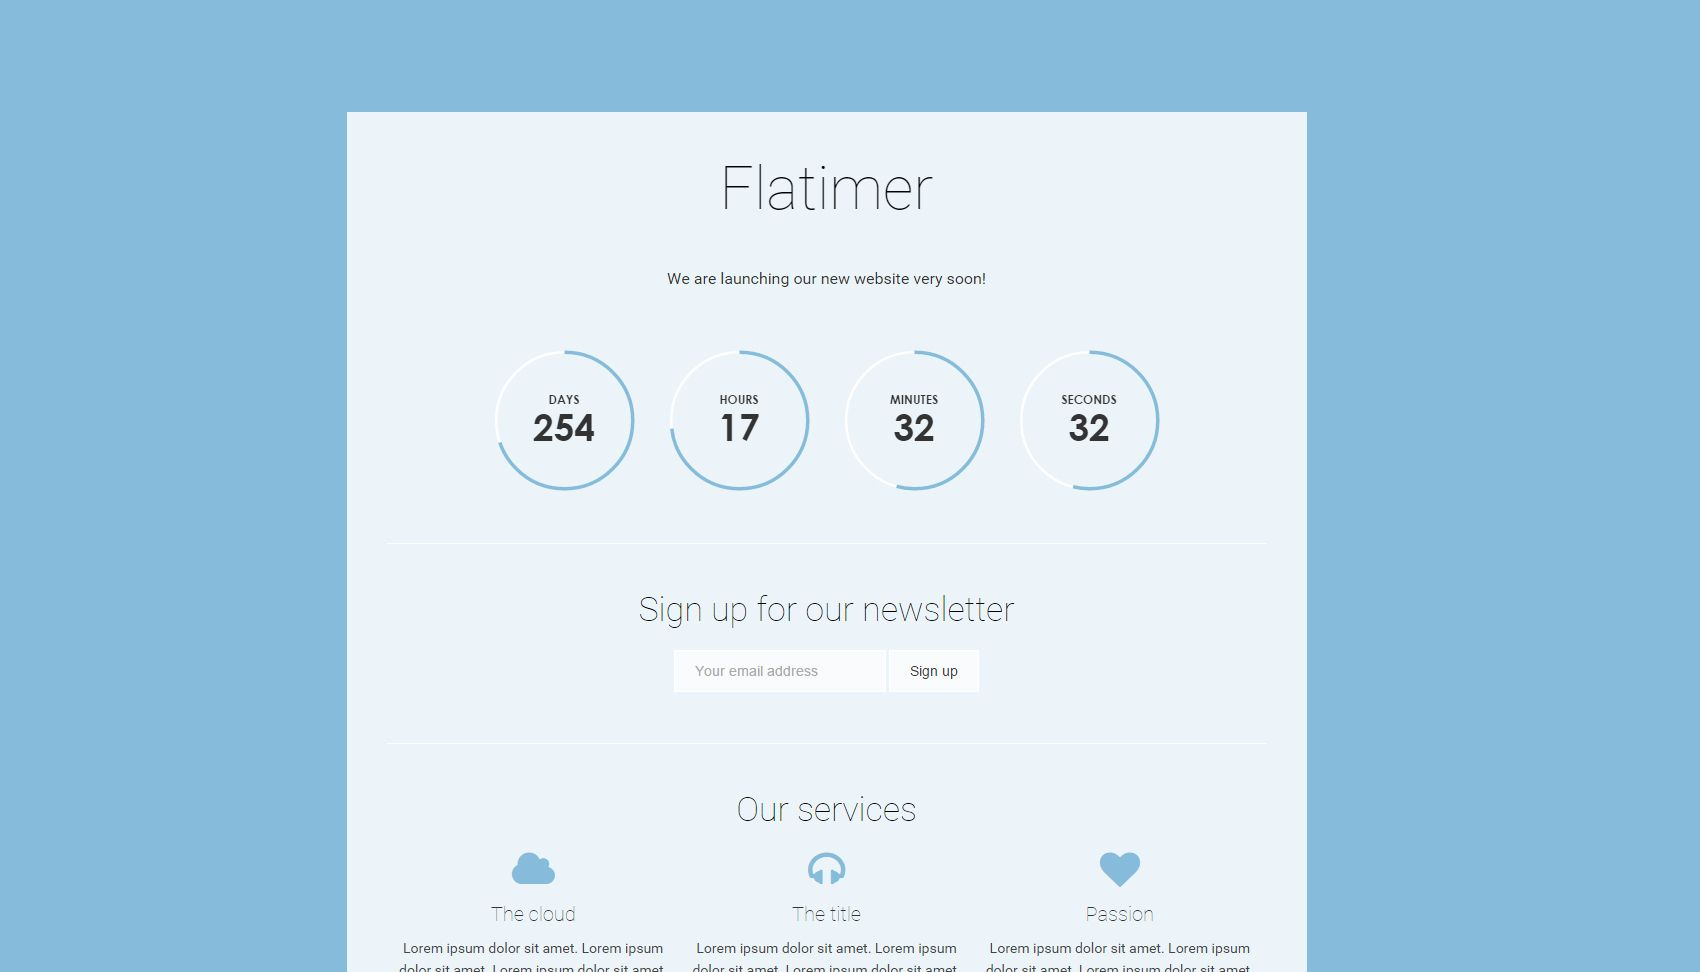 Flatimer - Coming soon HTML Template Screenshot 1